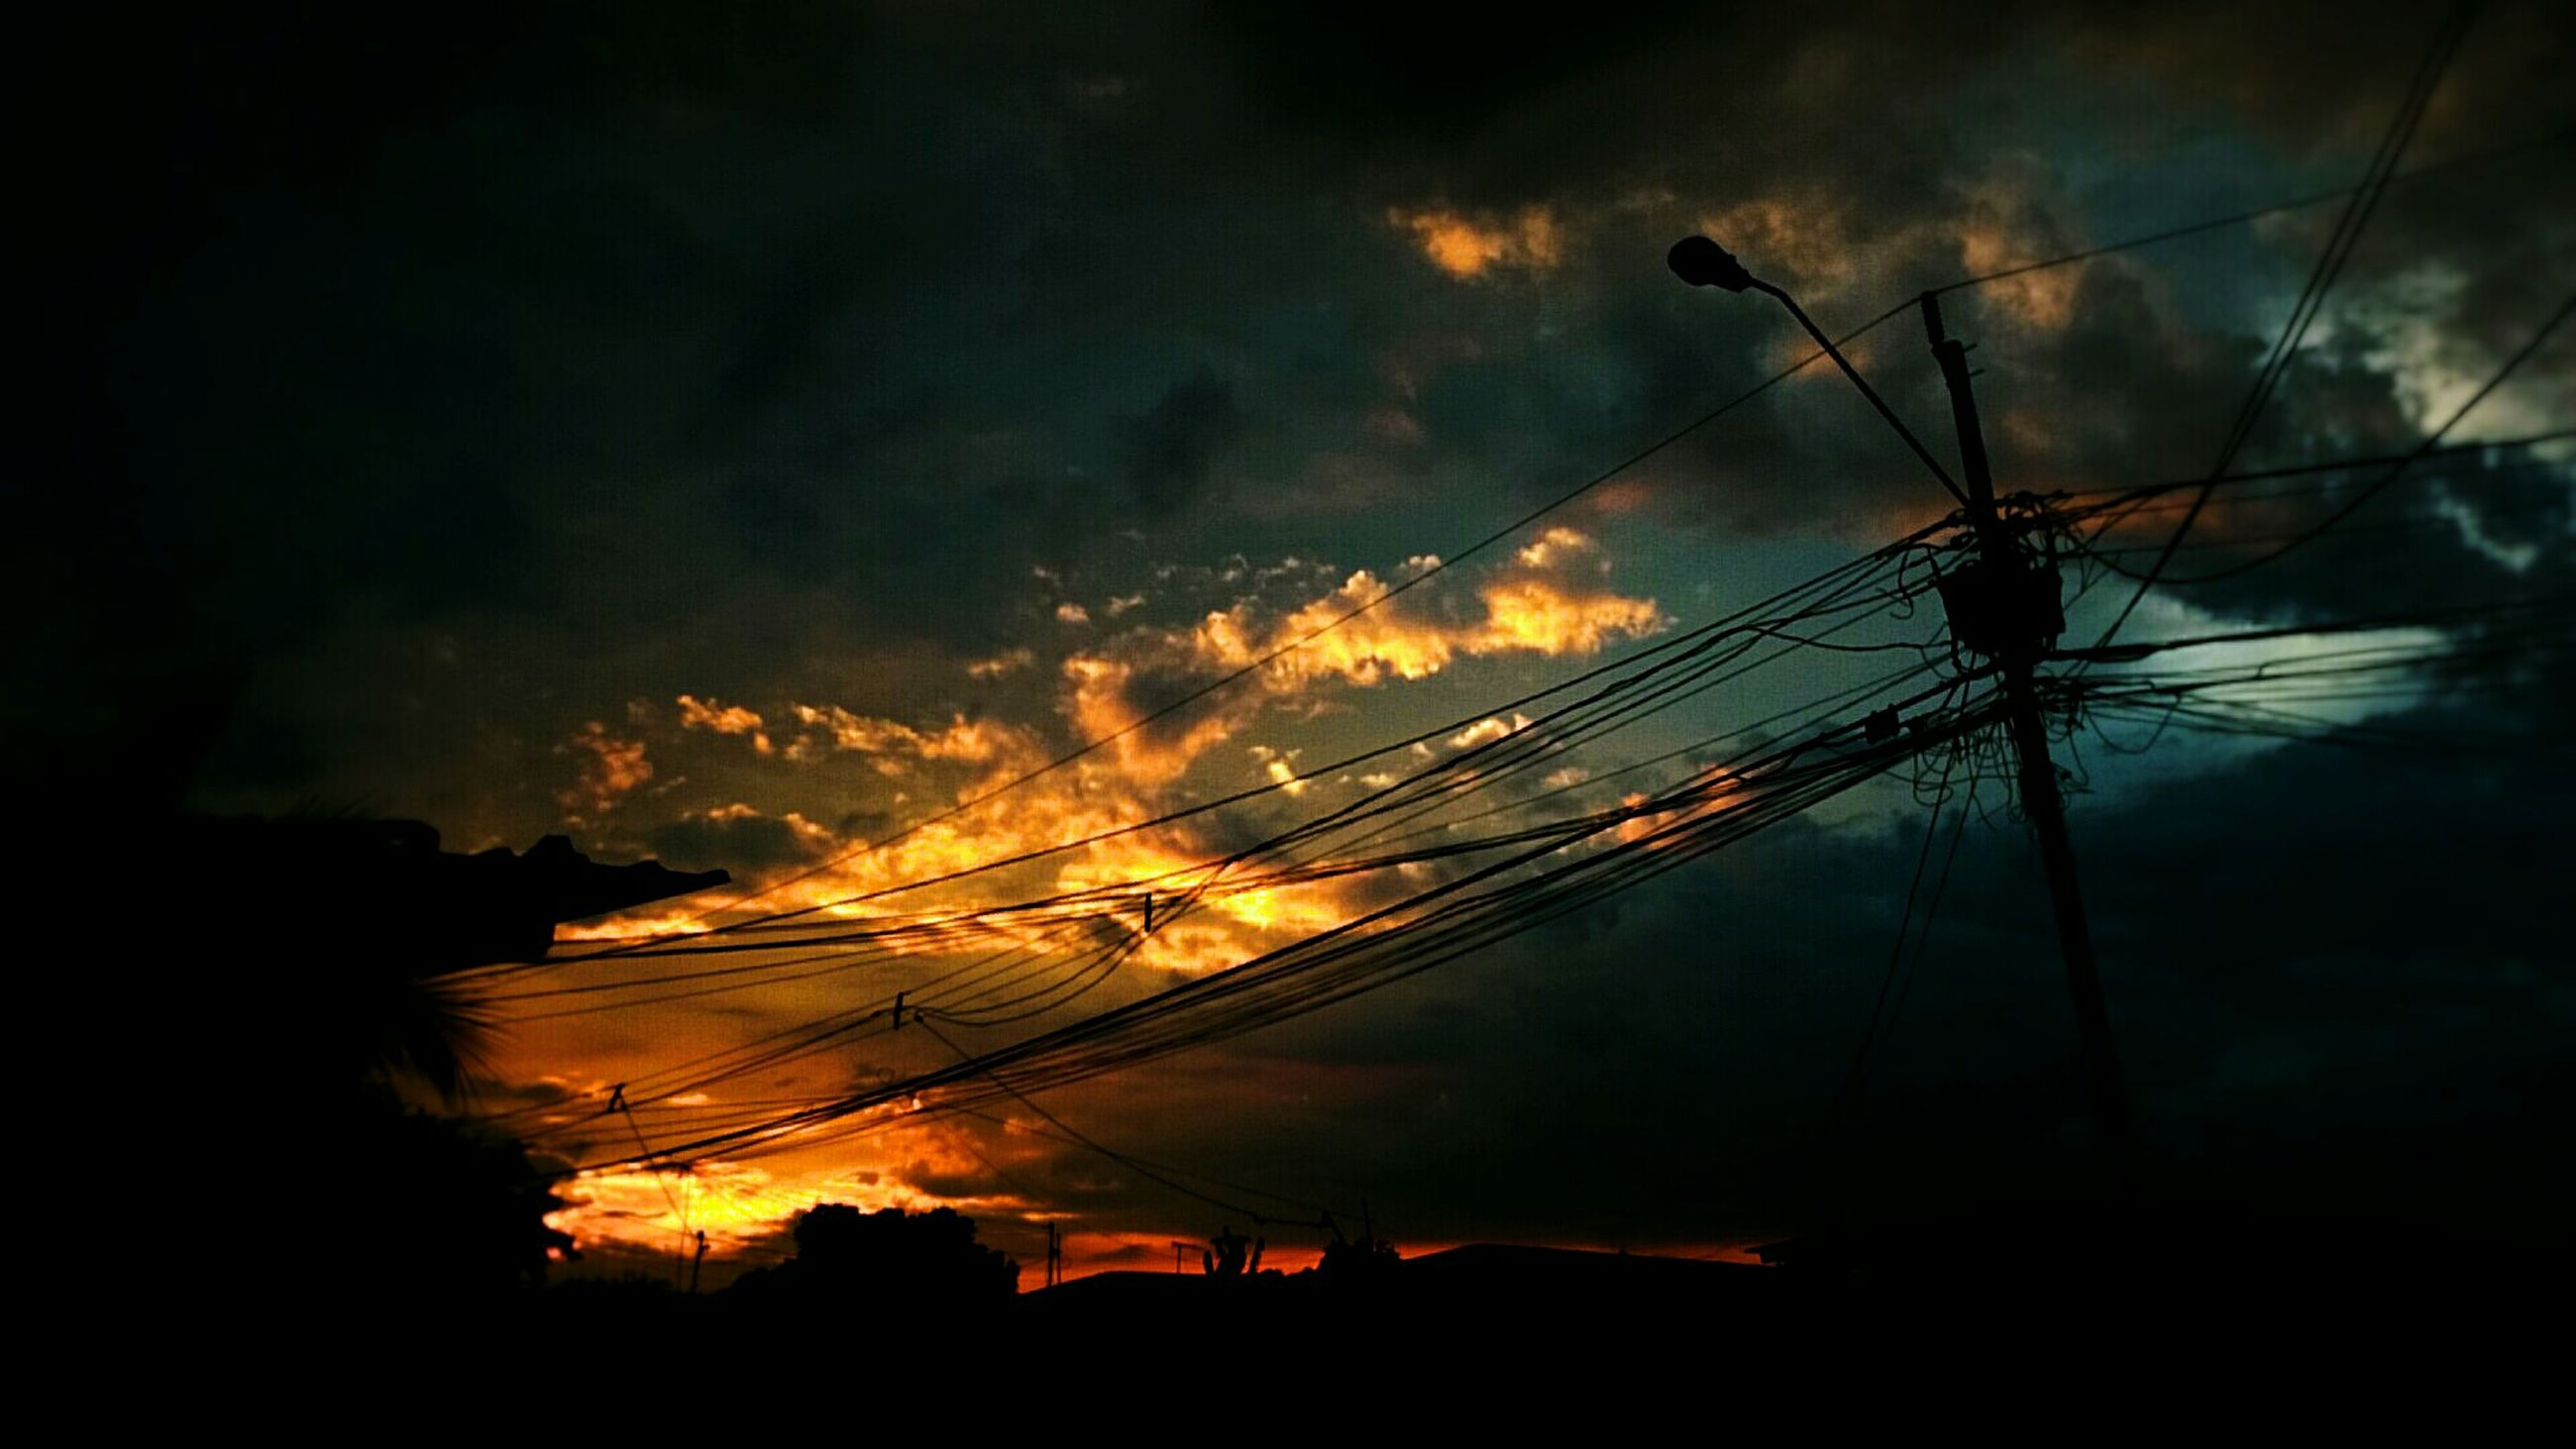 sunset, silhouette, power line, power supply, electricity, low angle view, cable, connection, sky, tree, scenics, beauty in nature, tranquil scene, orange color, electricity pylon, cloud, outdoors, nature, tranquility, cloud - sky, power cable, atmospheric mood, majestic, outline, dramatic sky, atmosphere, back lit, cloudscape